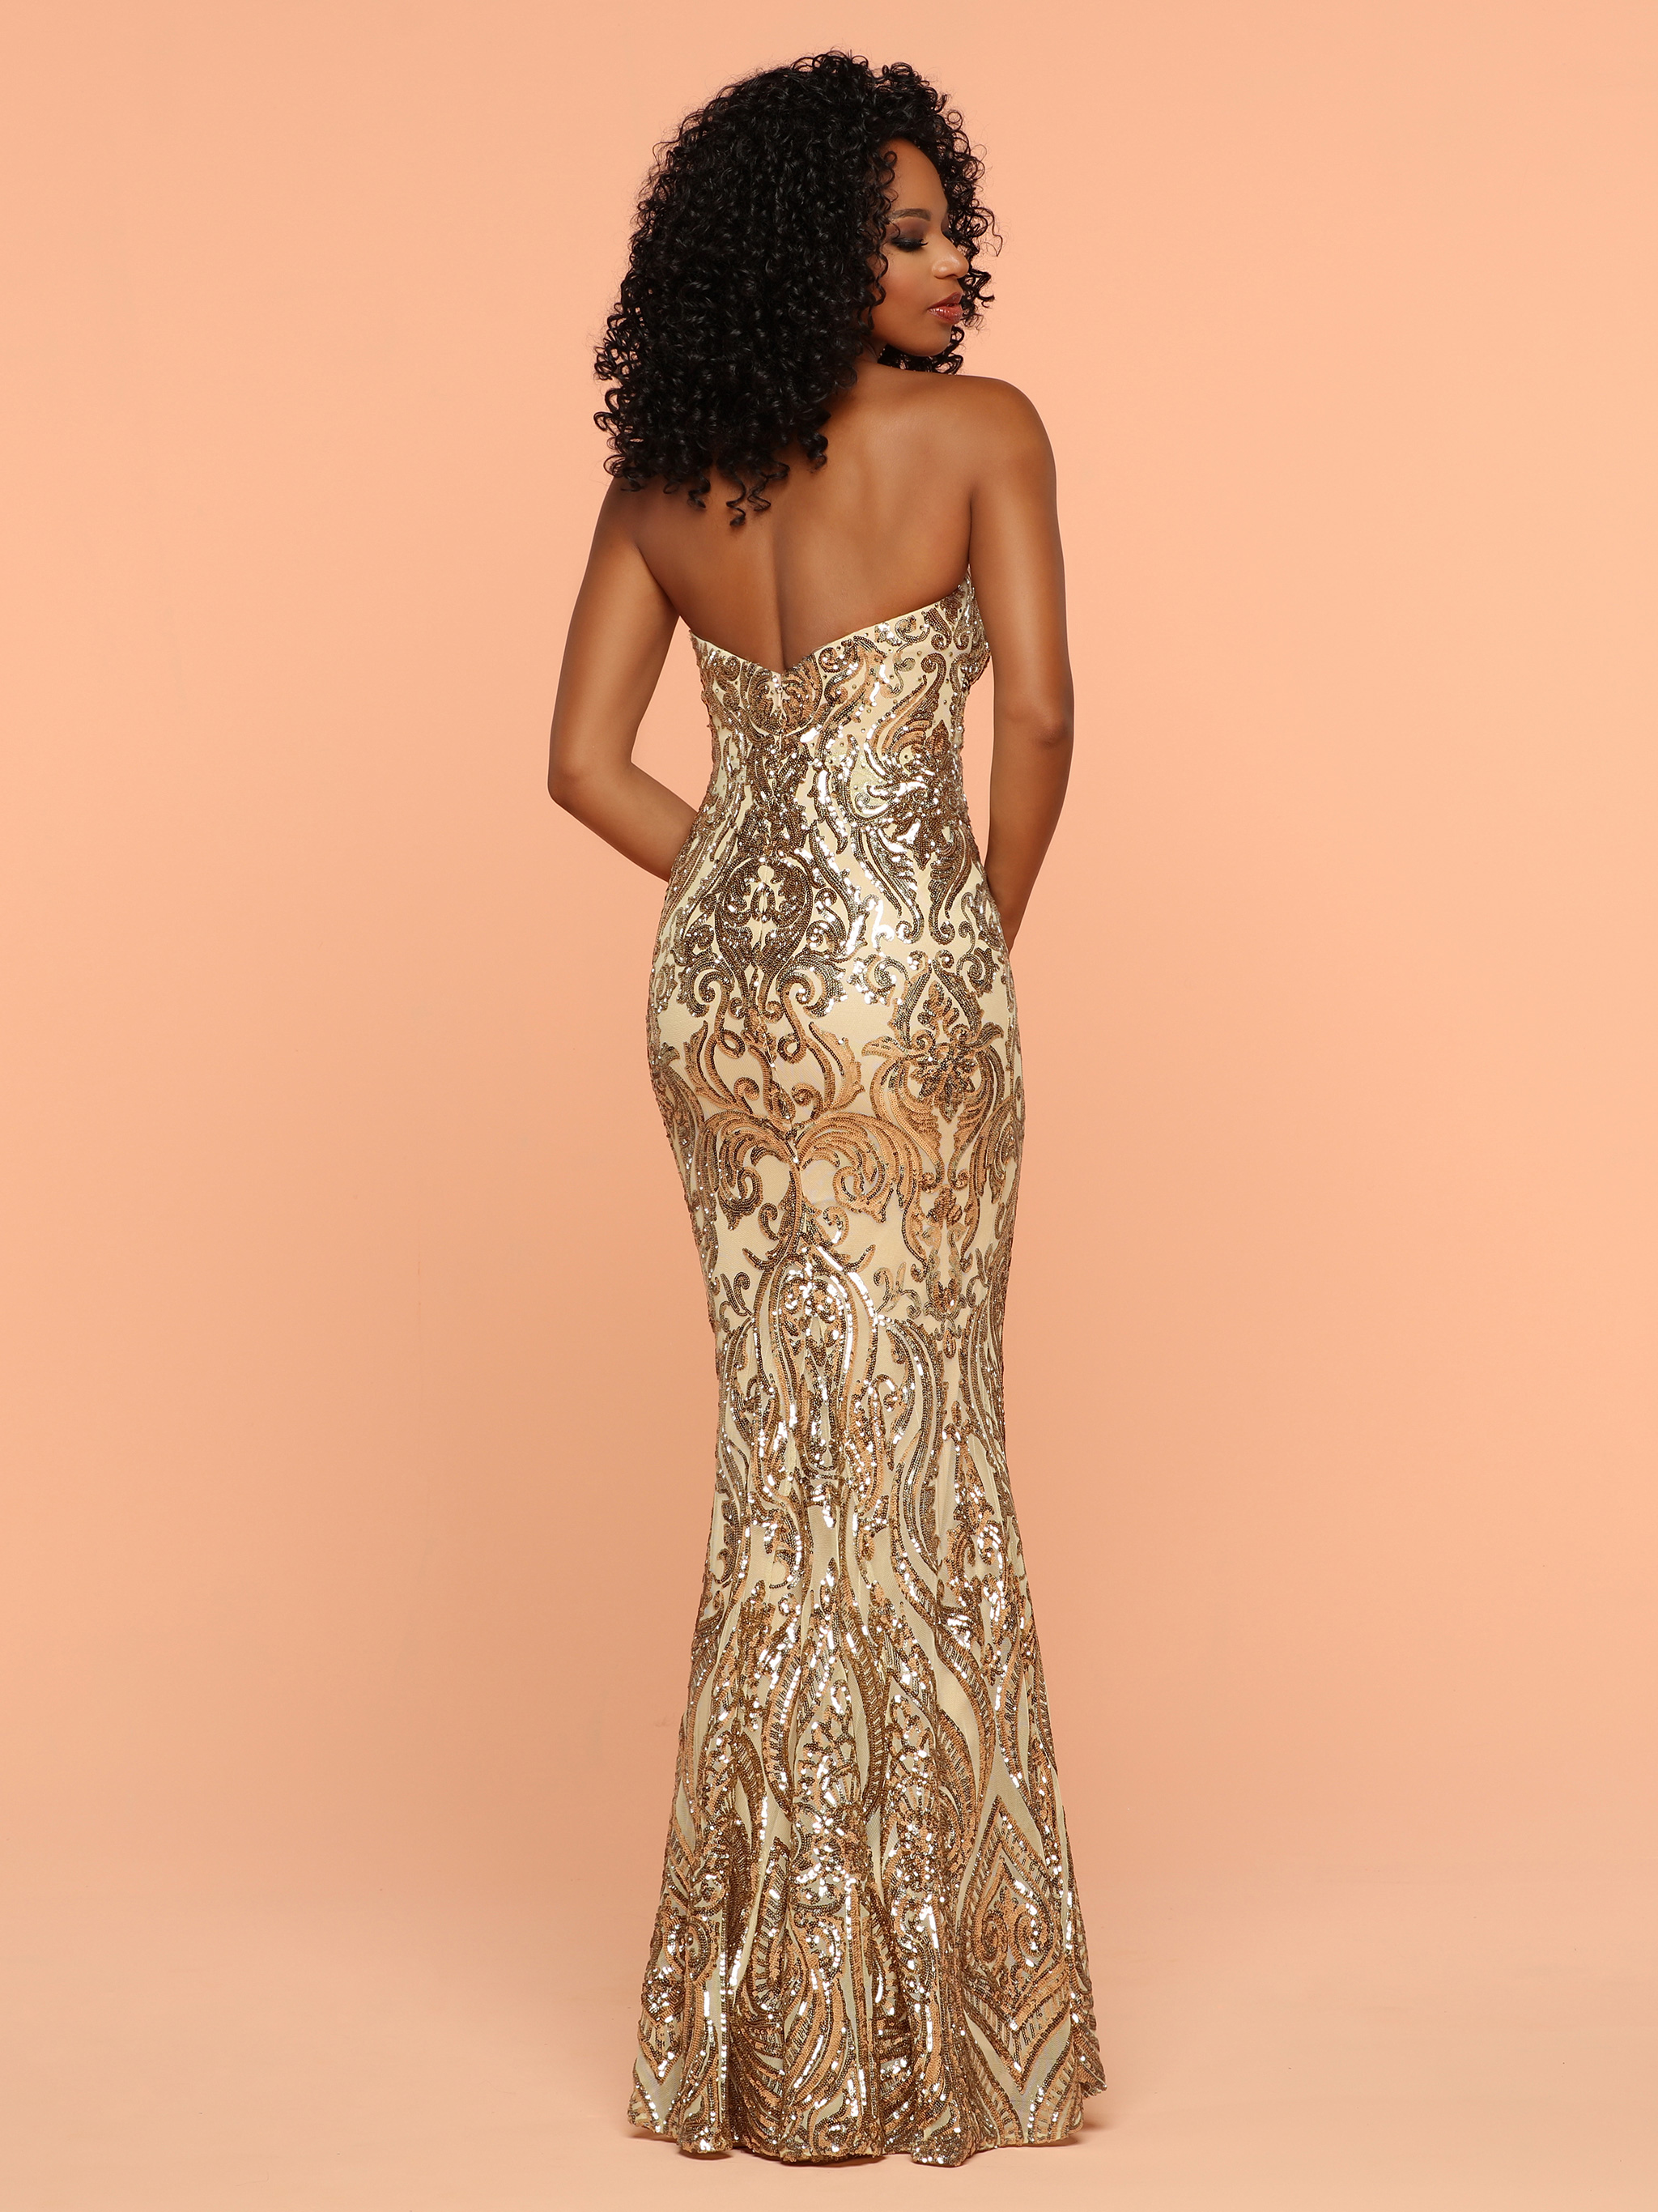 Image showing back view of style #71832